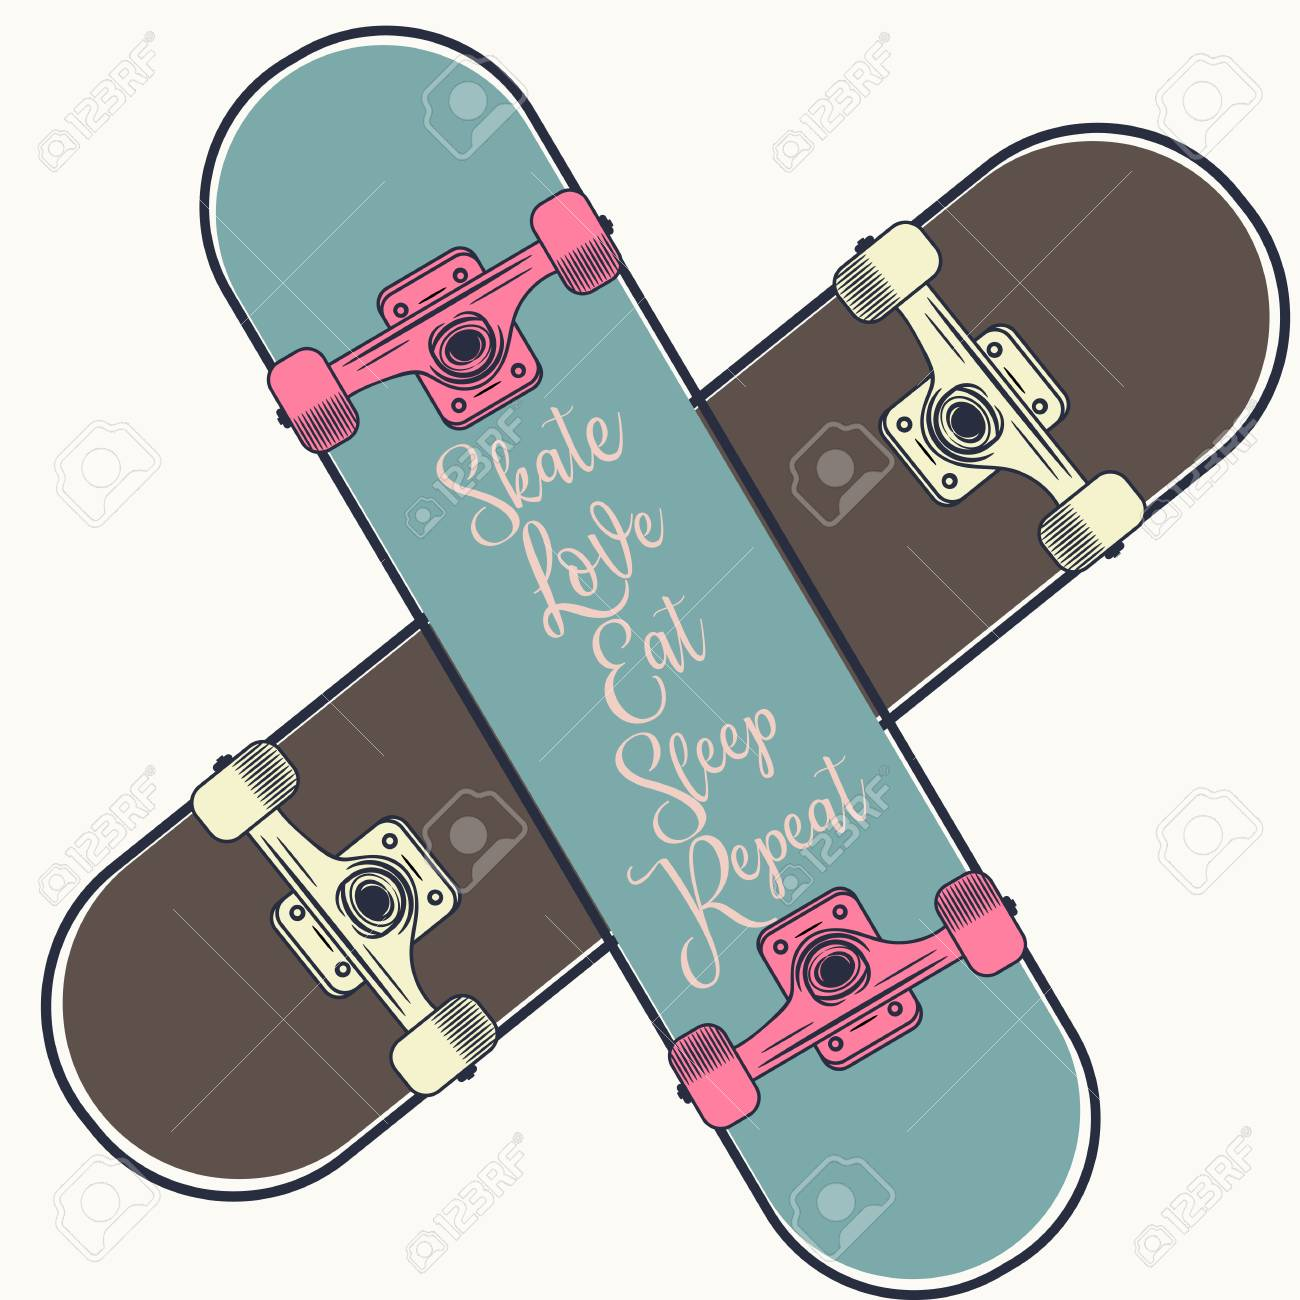 Lifestyle vector illustration with 2 skateboards girl and boy